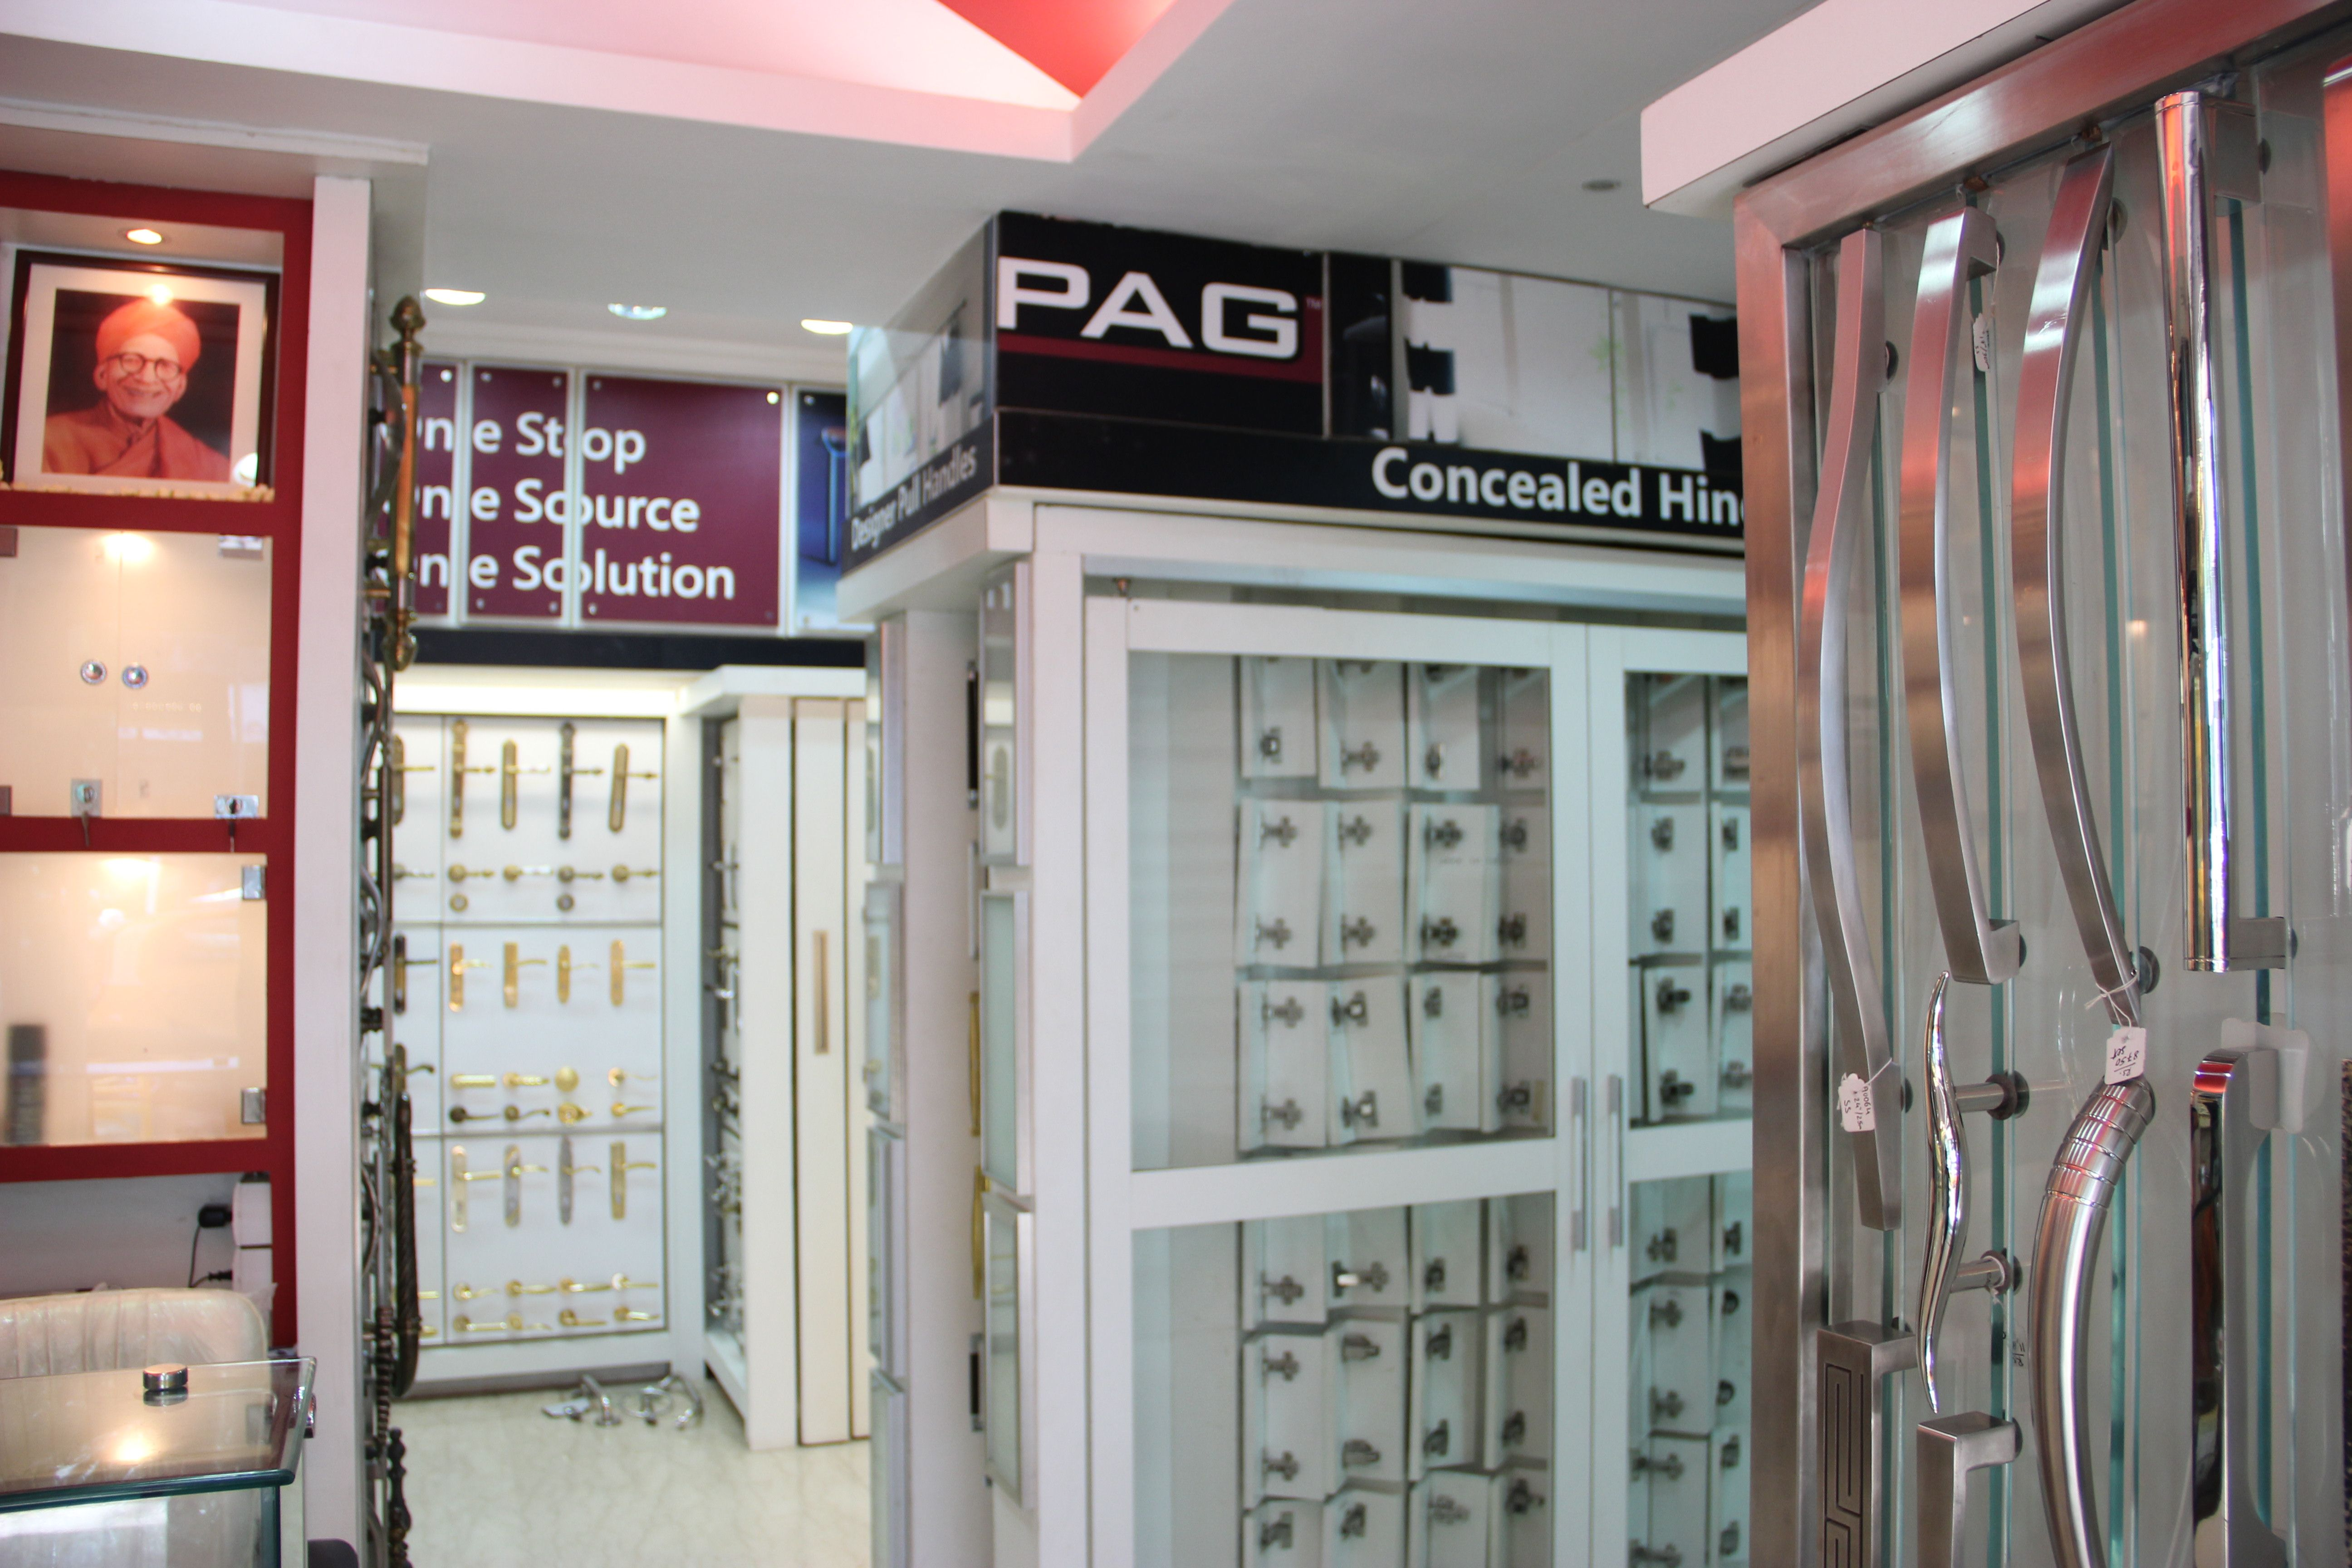 Our new architectural pag hardware showroom and display center in mumbai worli complete for Studio41 home design showroom southside chicago